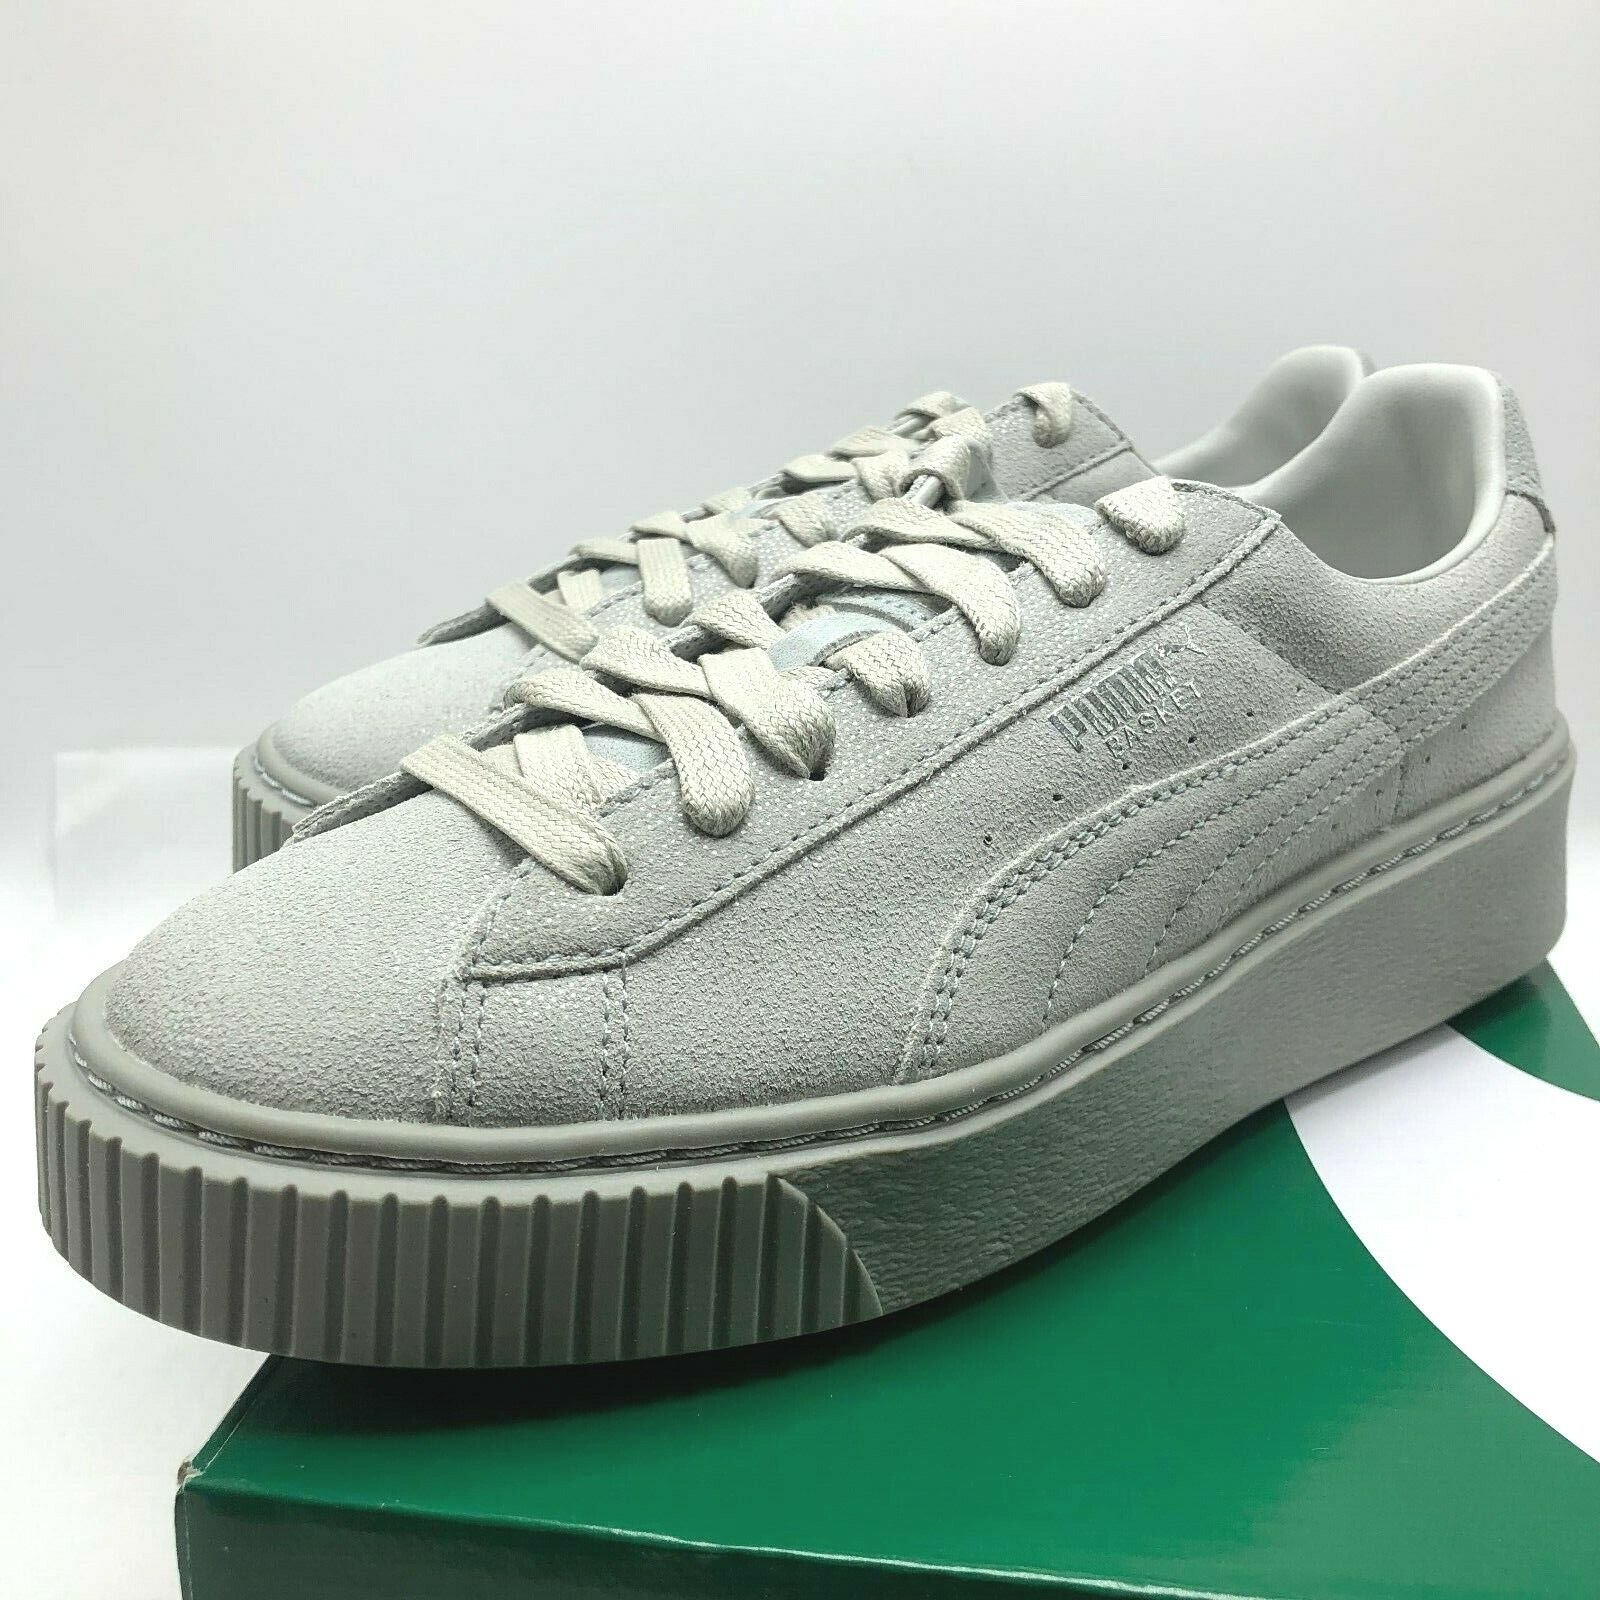 brand new 07949 a748a WOMENS PUMA BASKET PLATFORM GREY VIOLET (363313 01), Sz 7-10,100%  AUTHENTIC!!